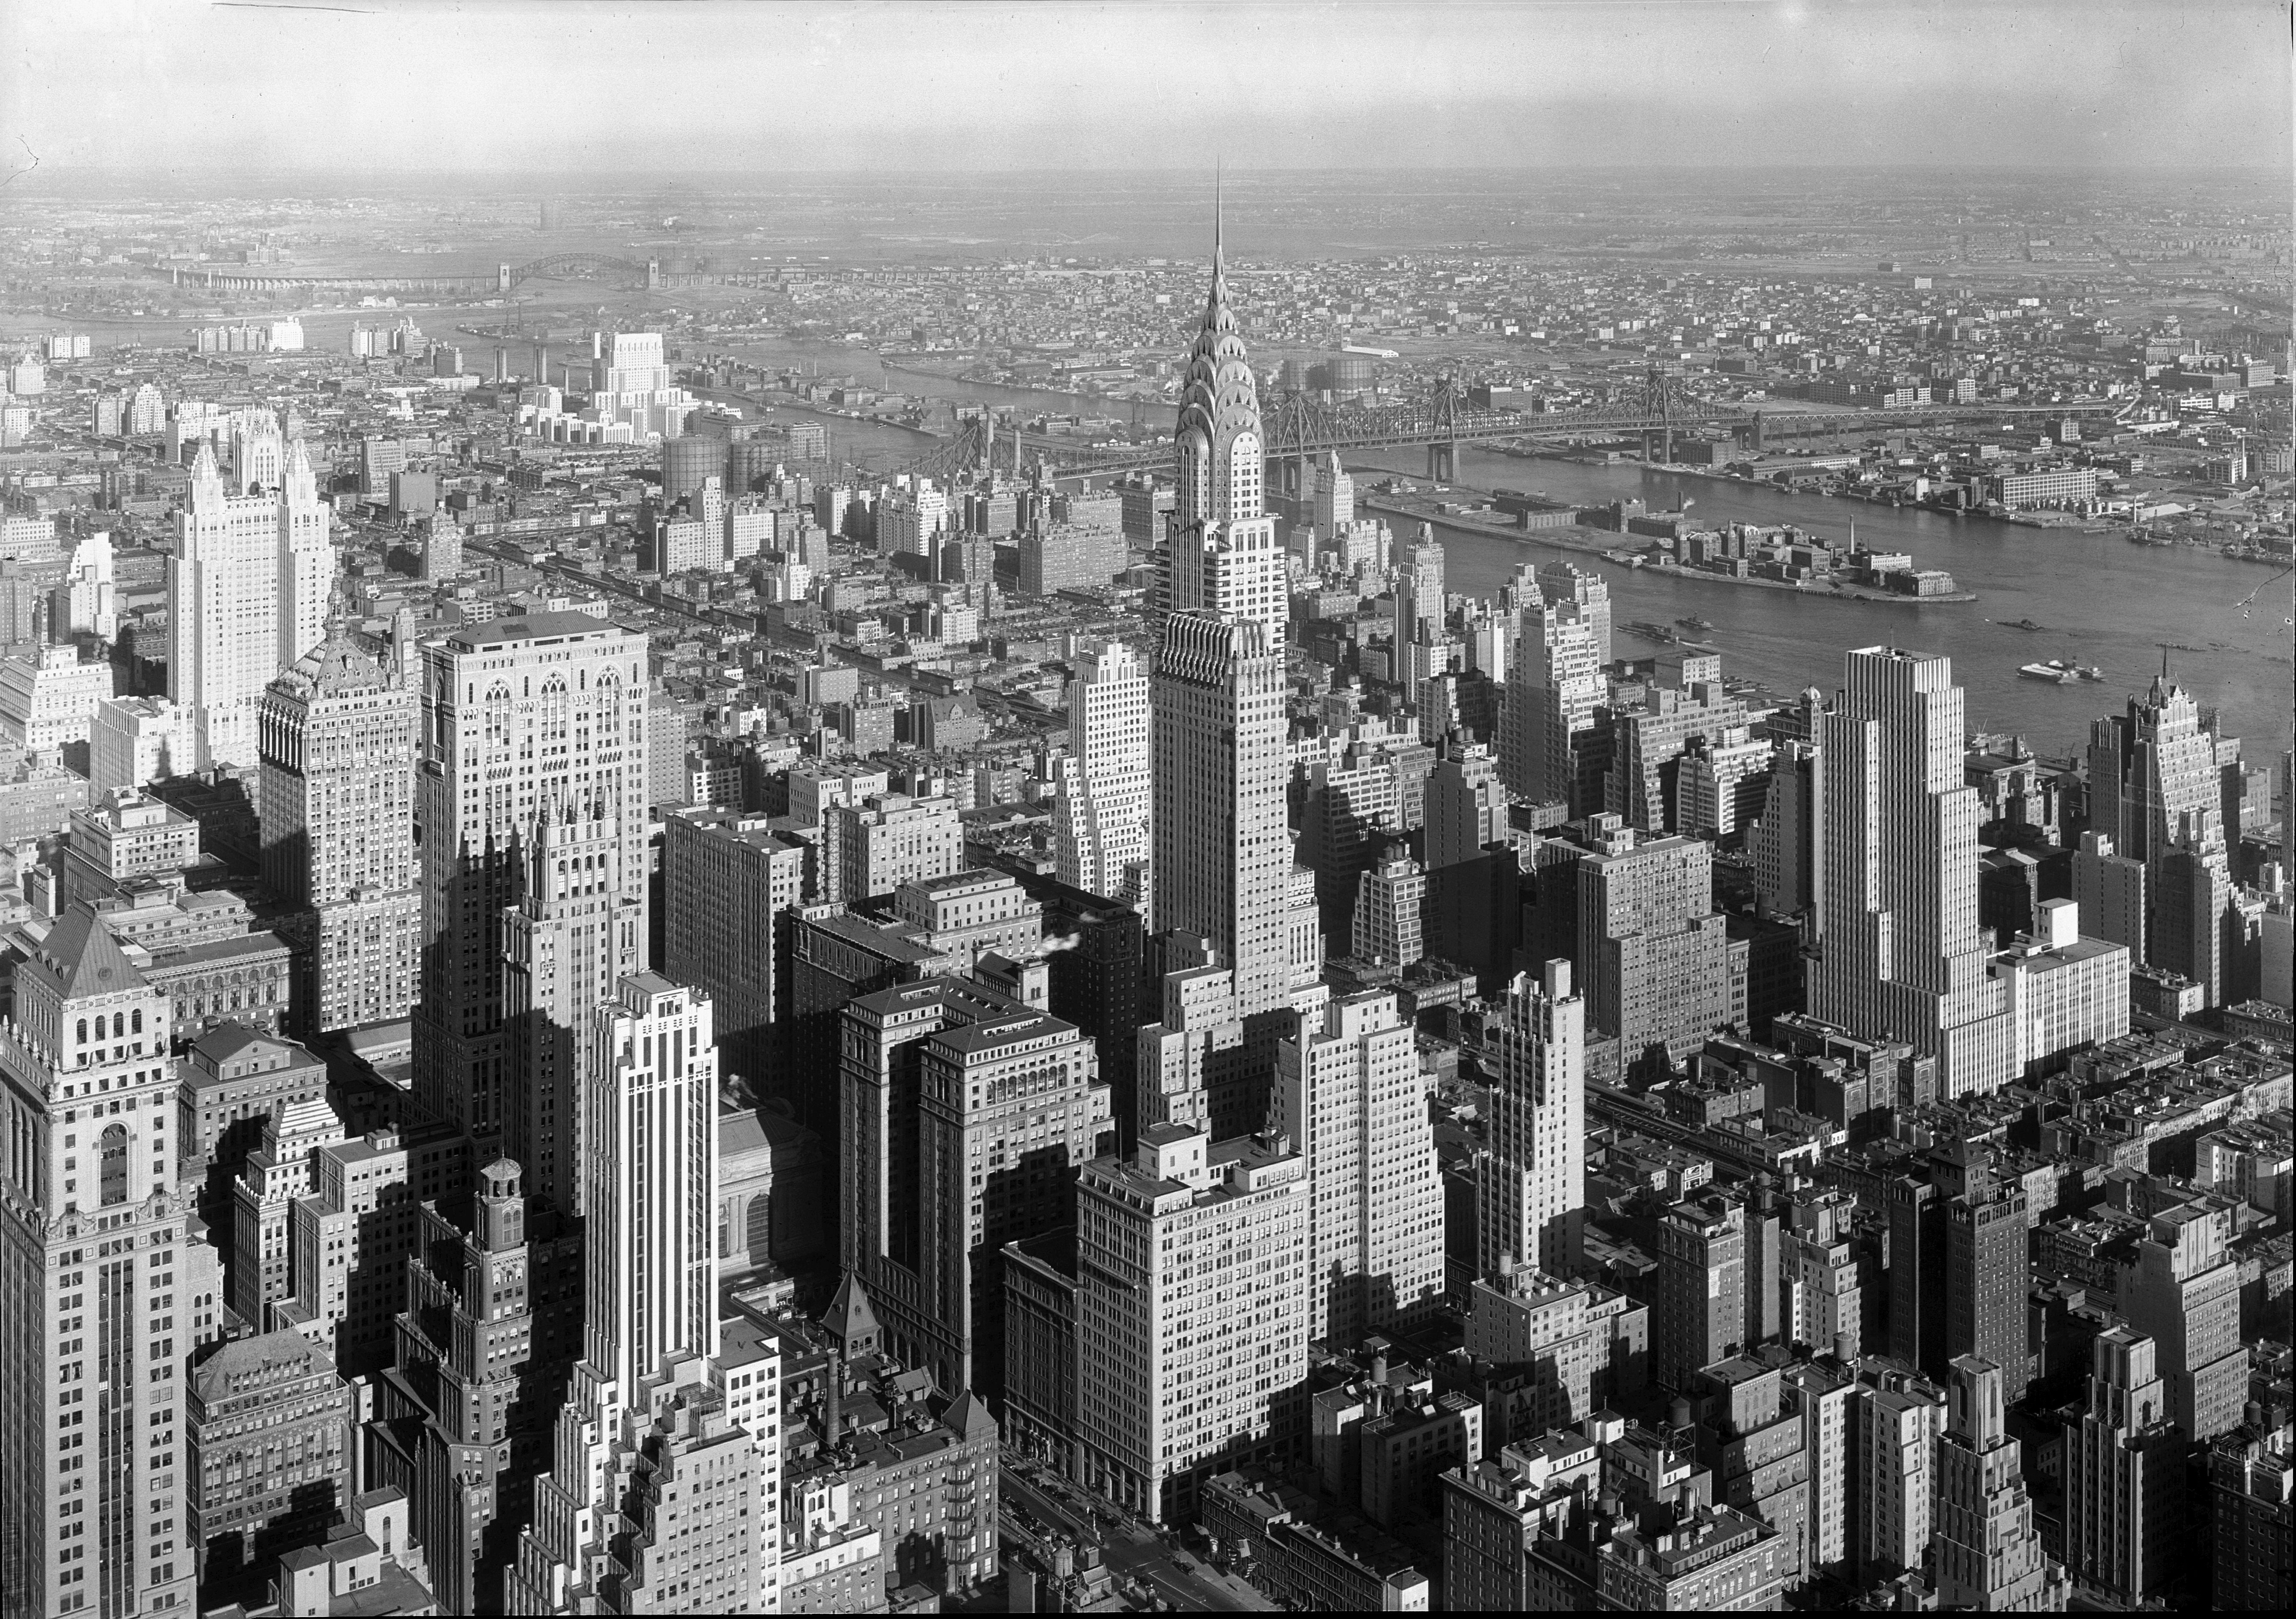 Coloriage Adulte New York.Chrysler Building Gottscho Schleisner Collection Library